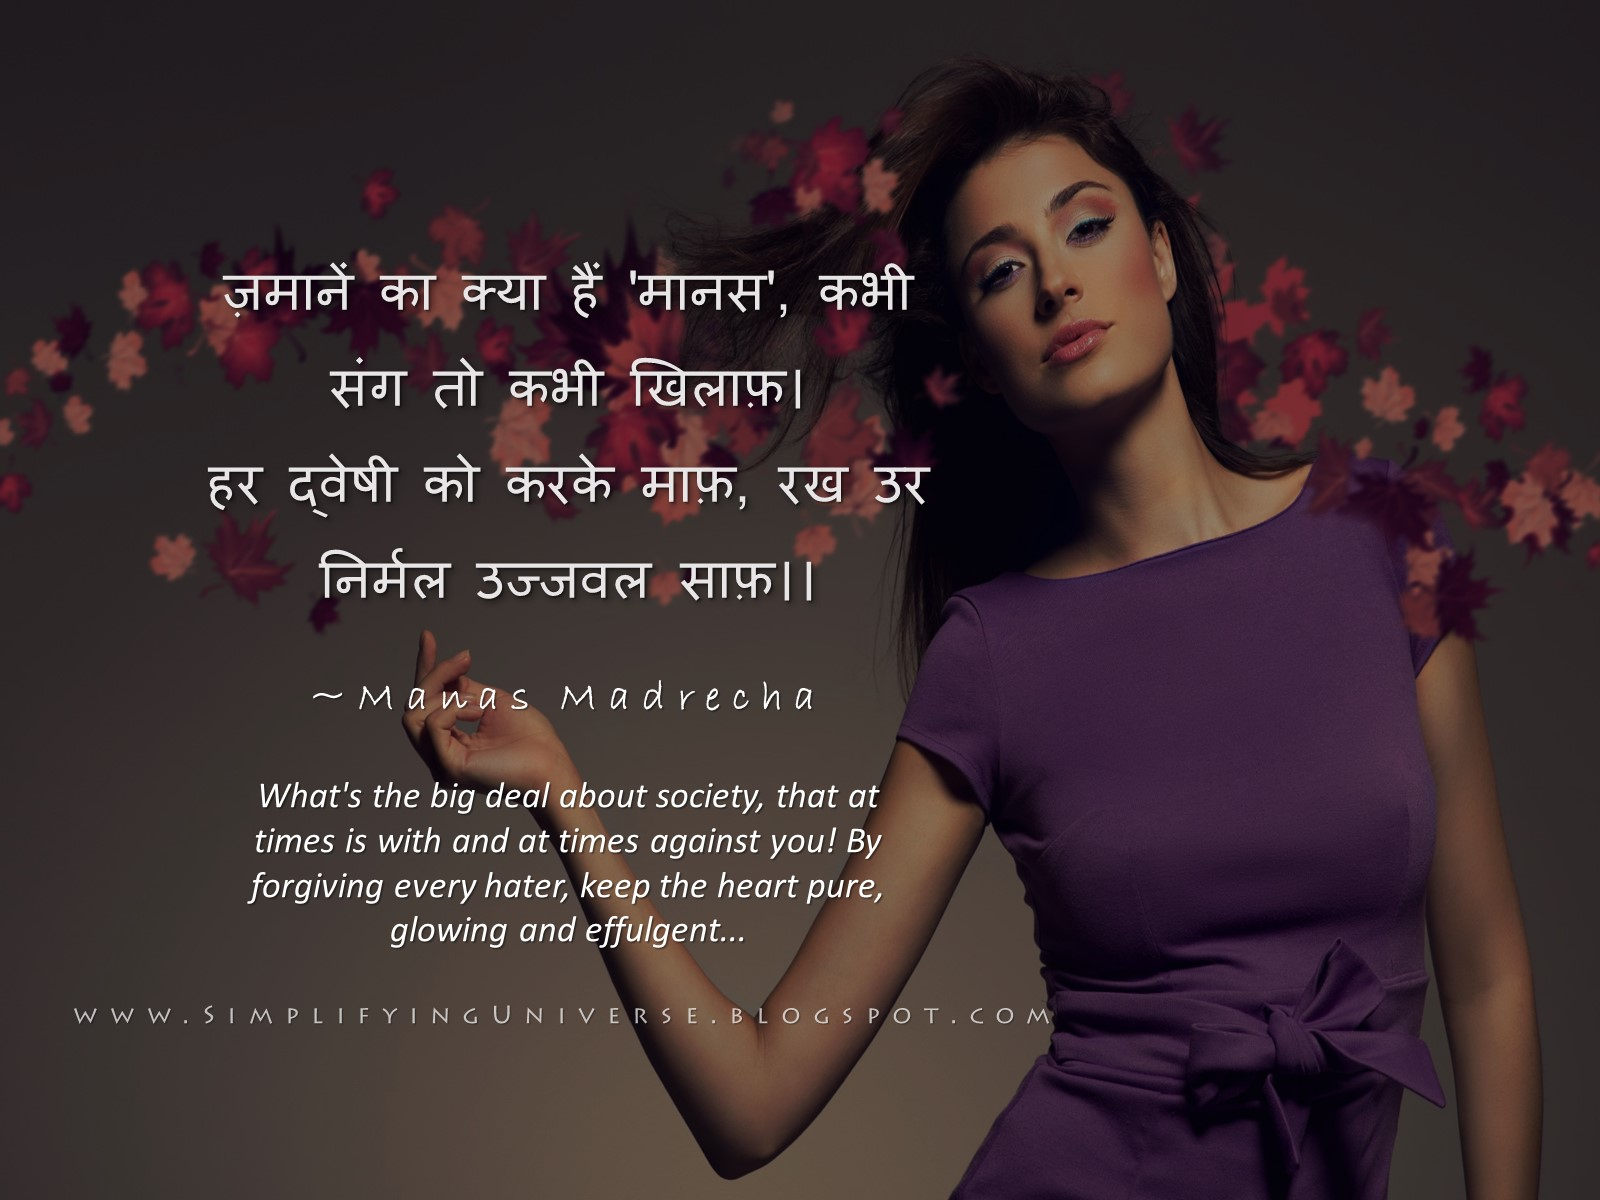 woman in violet purple dress, girl flowers hair, manas madrecha, hindi poem on love criticism rumors, woman portrait photography, hindi quotes, india mumbai blog, self-help hindi poet